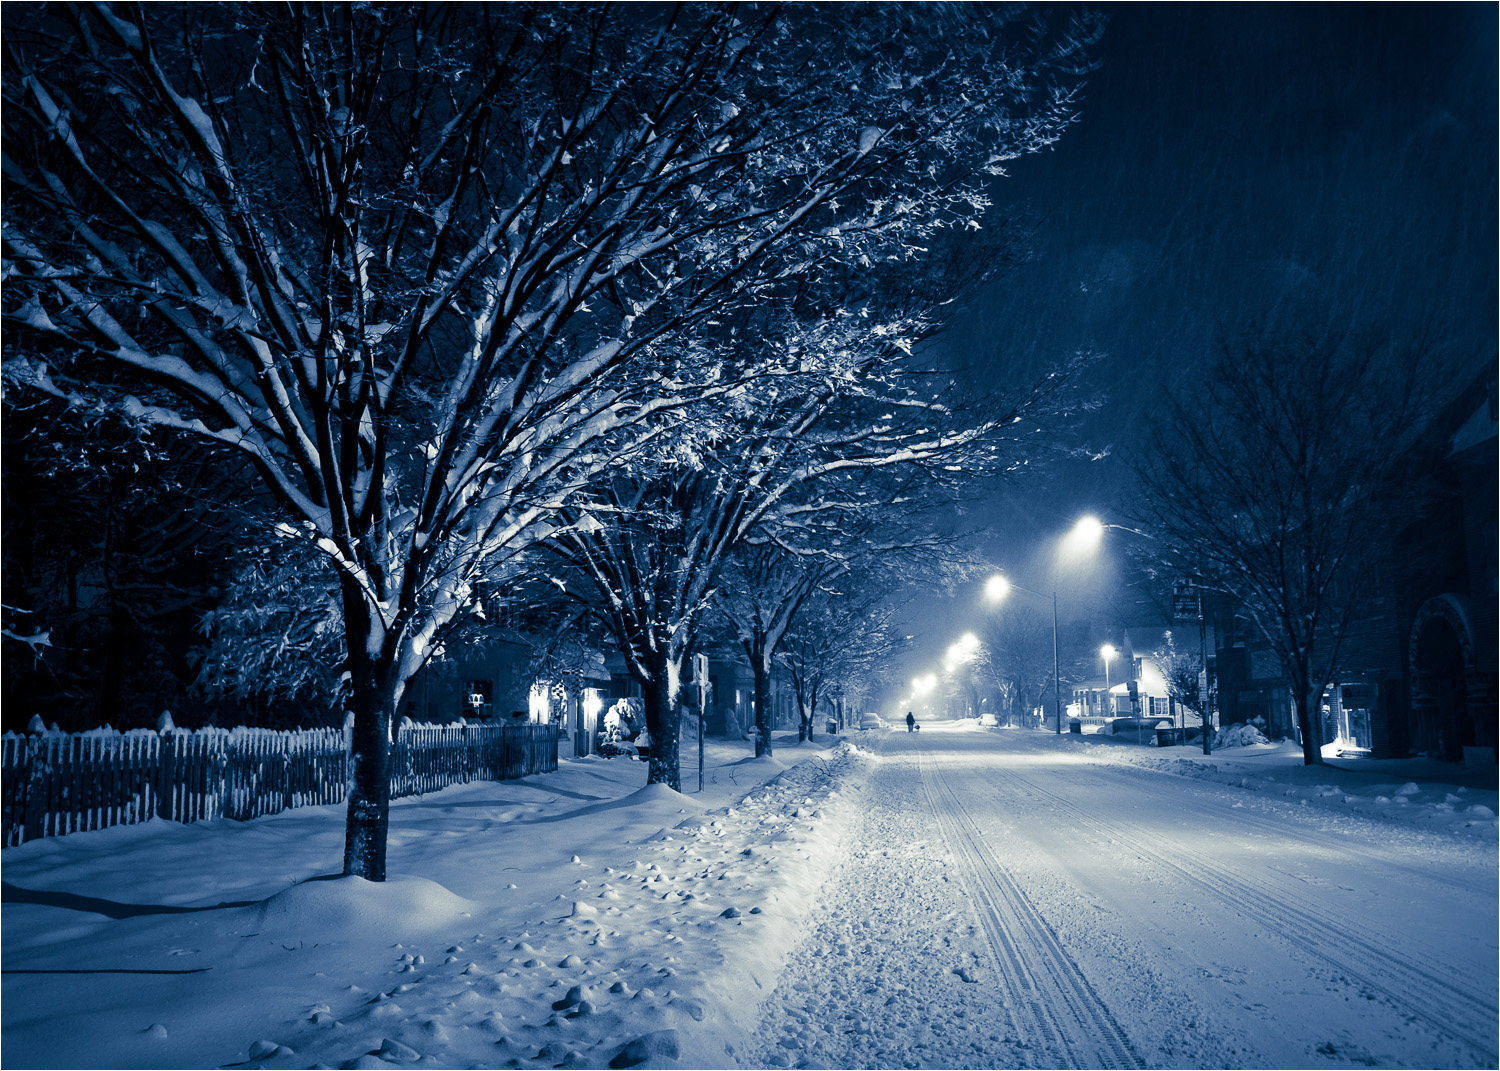 20100206_Mount-Vernon-Ave-Snow-Del-Ray.jpg